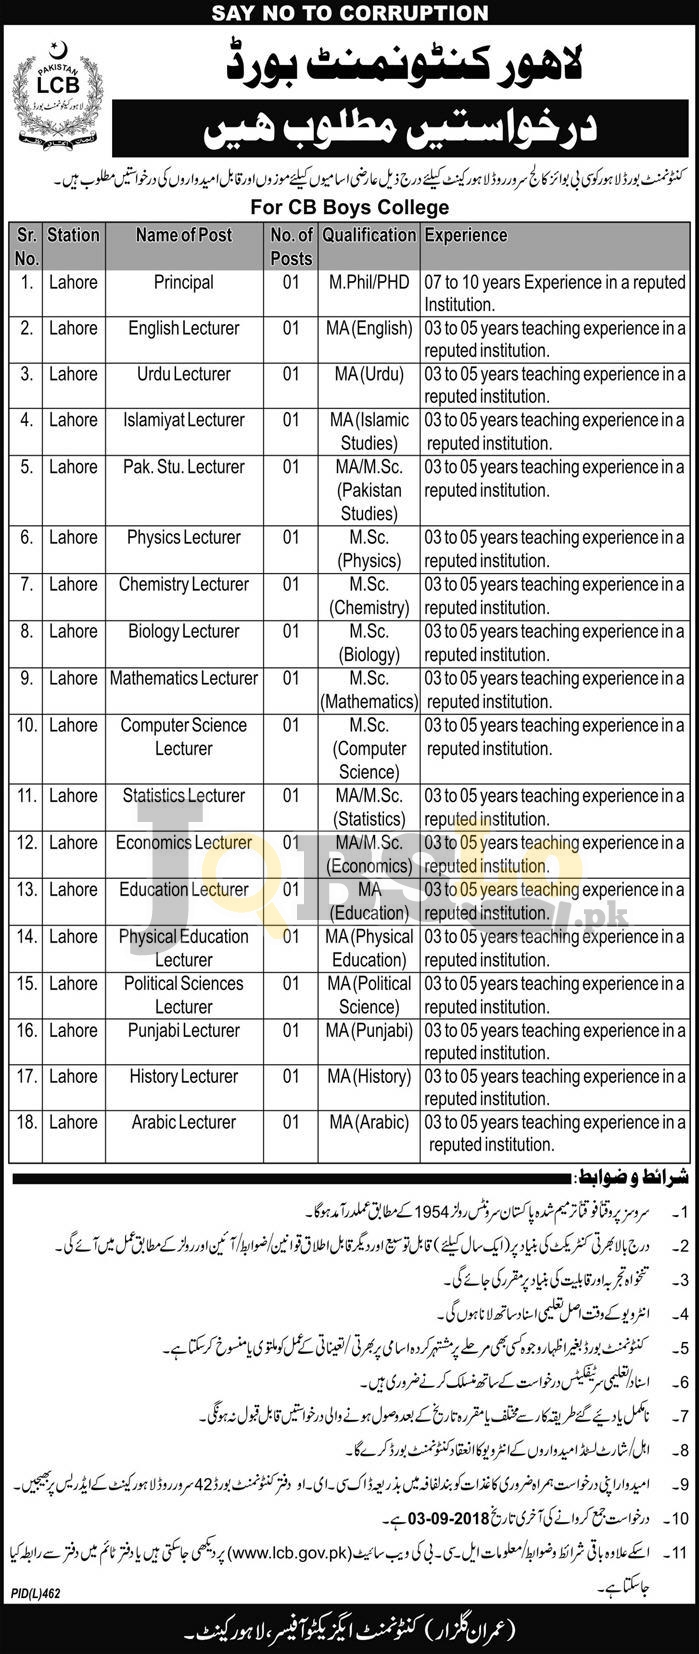 Lahore Cantonment Board Jobs 2018 CB College For Boys Latest